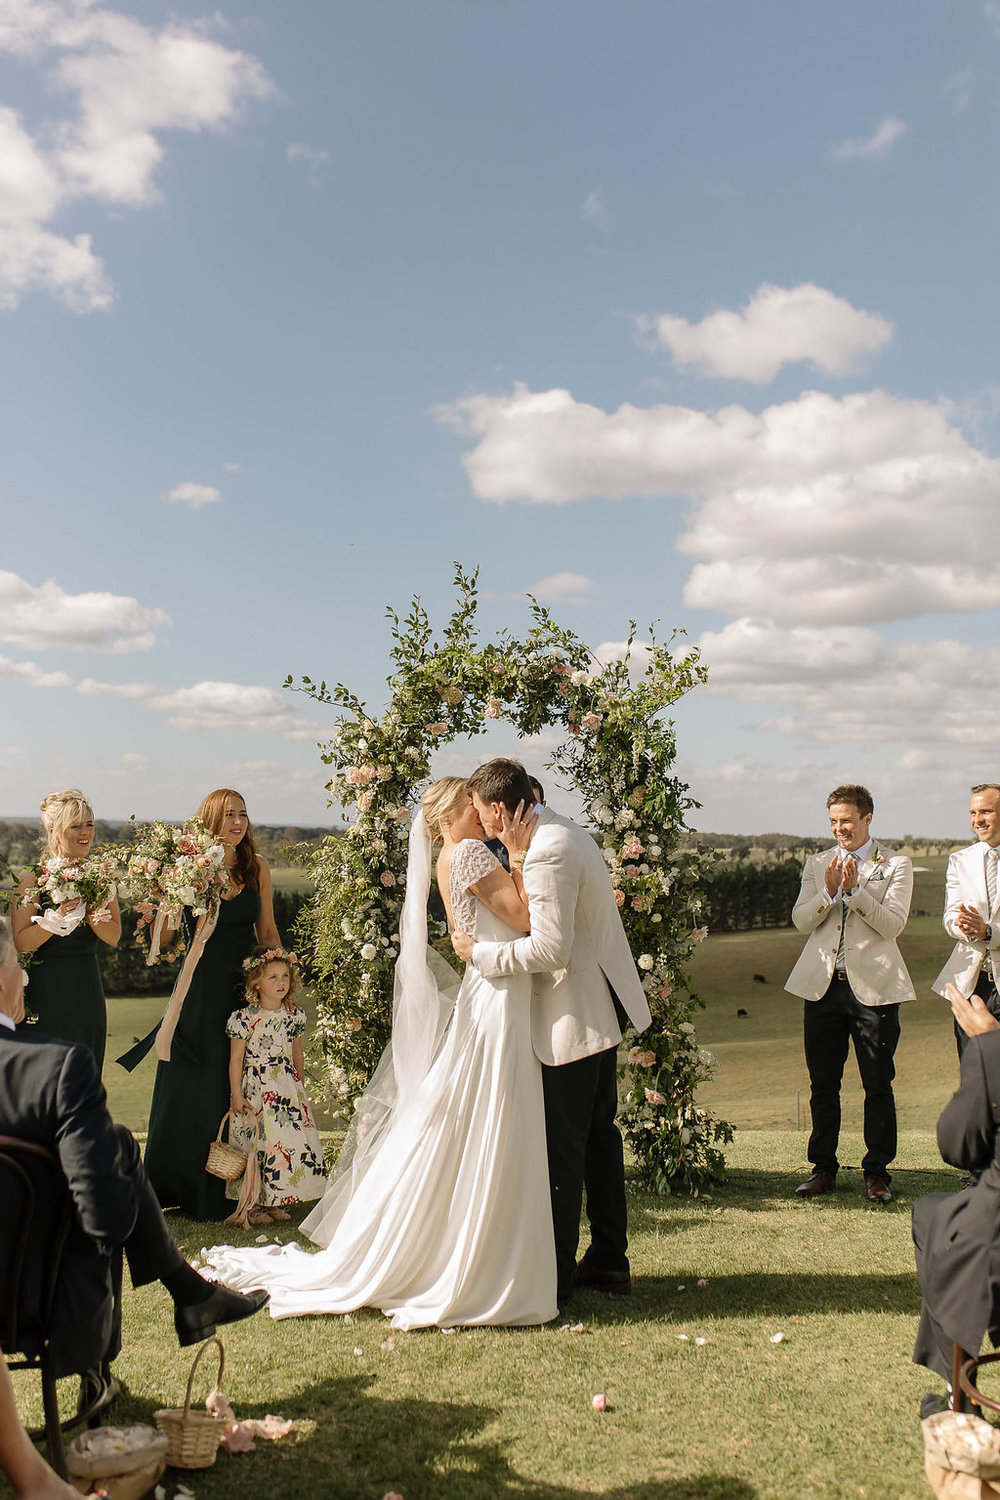 Bride and Groom, southern highalands wedding : floral arch : sydney florist and event designer .JPG